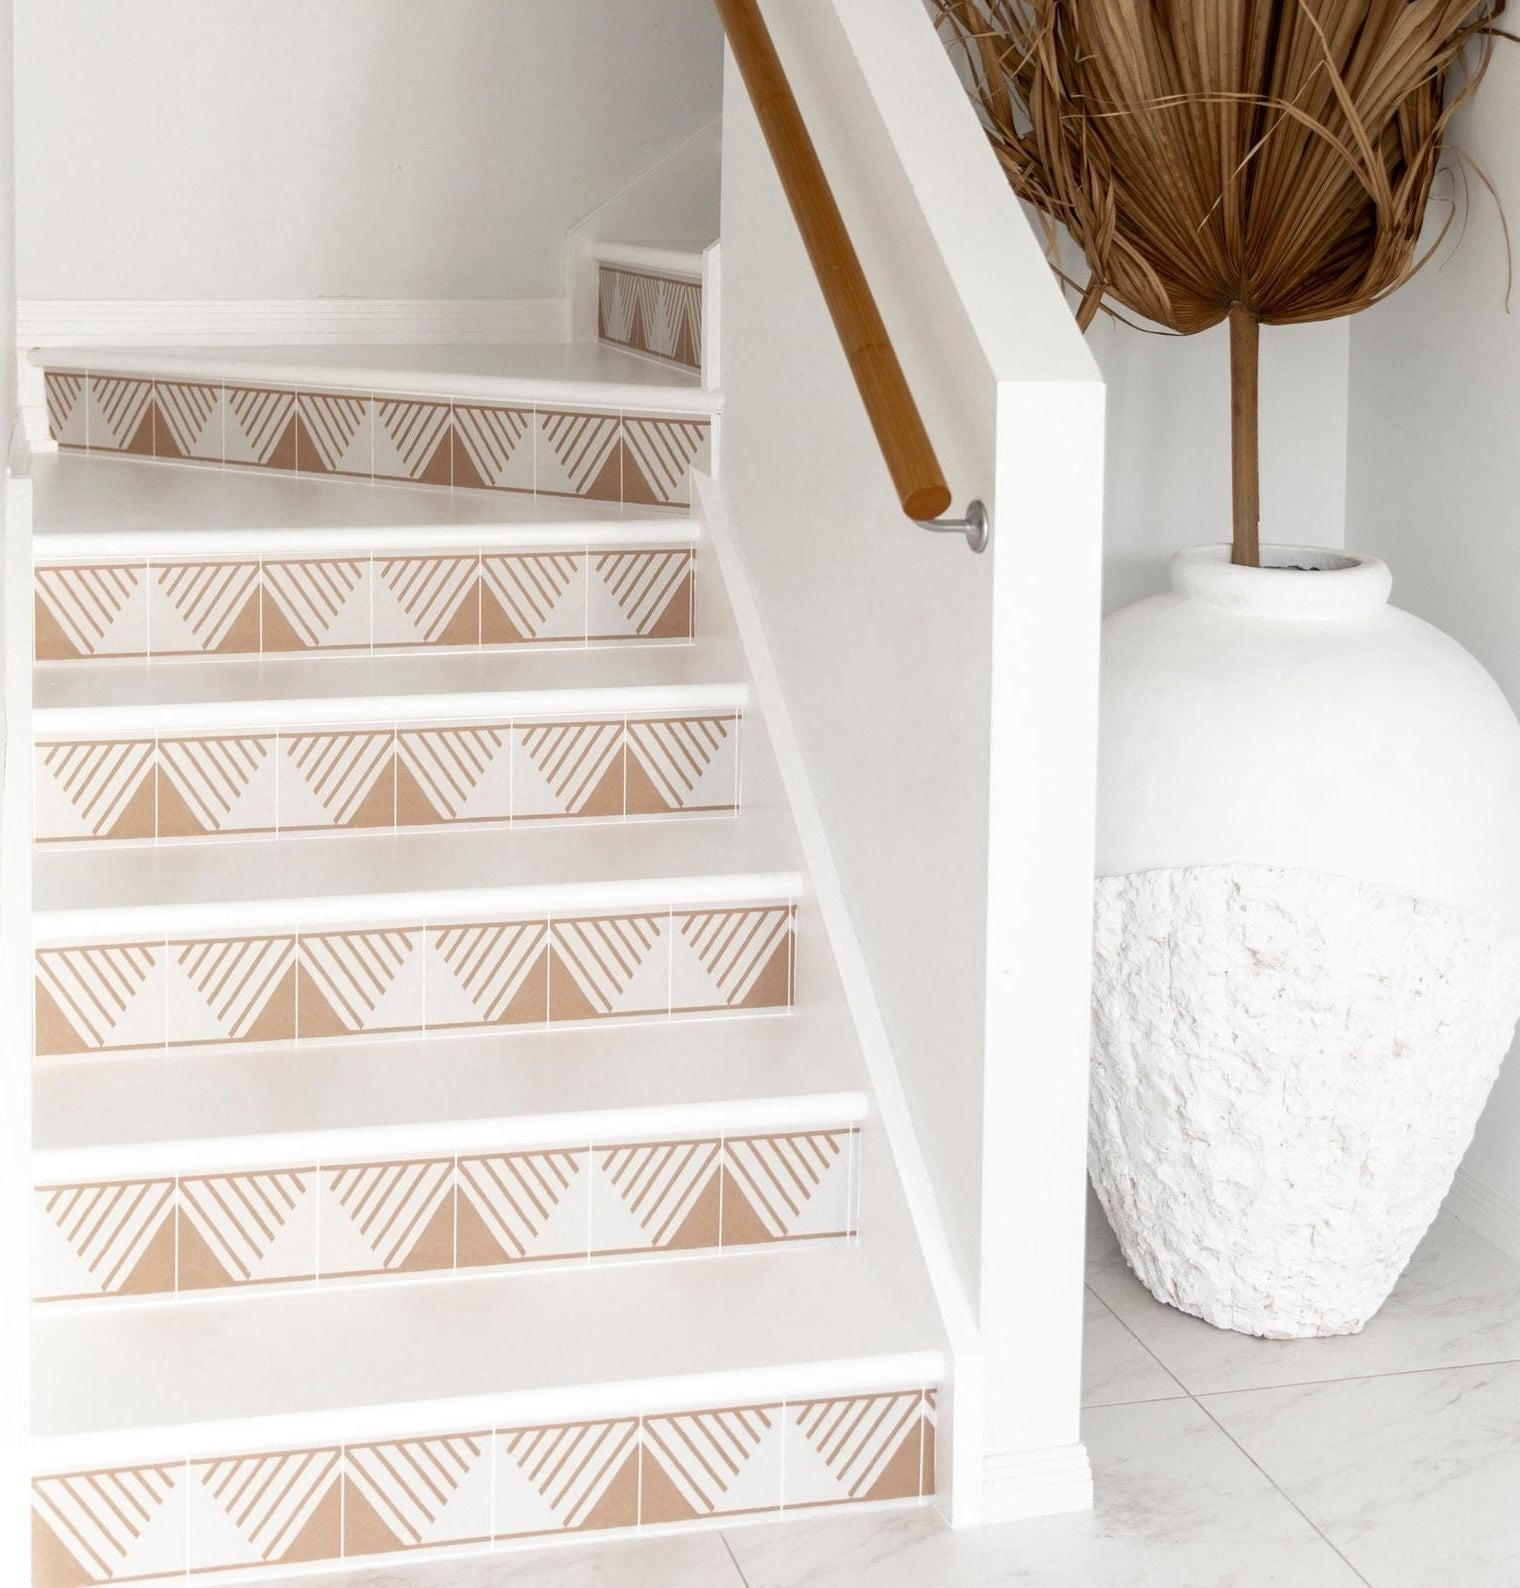 tan triangle with lines stickers on the vertical part of a set of stairs